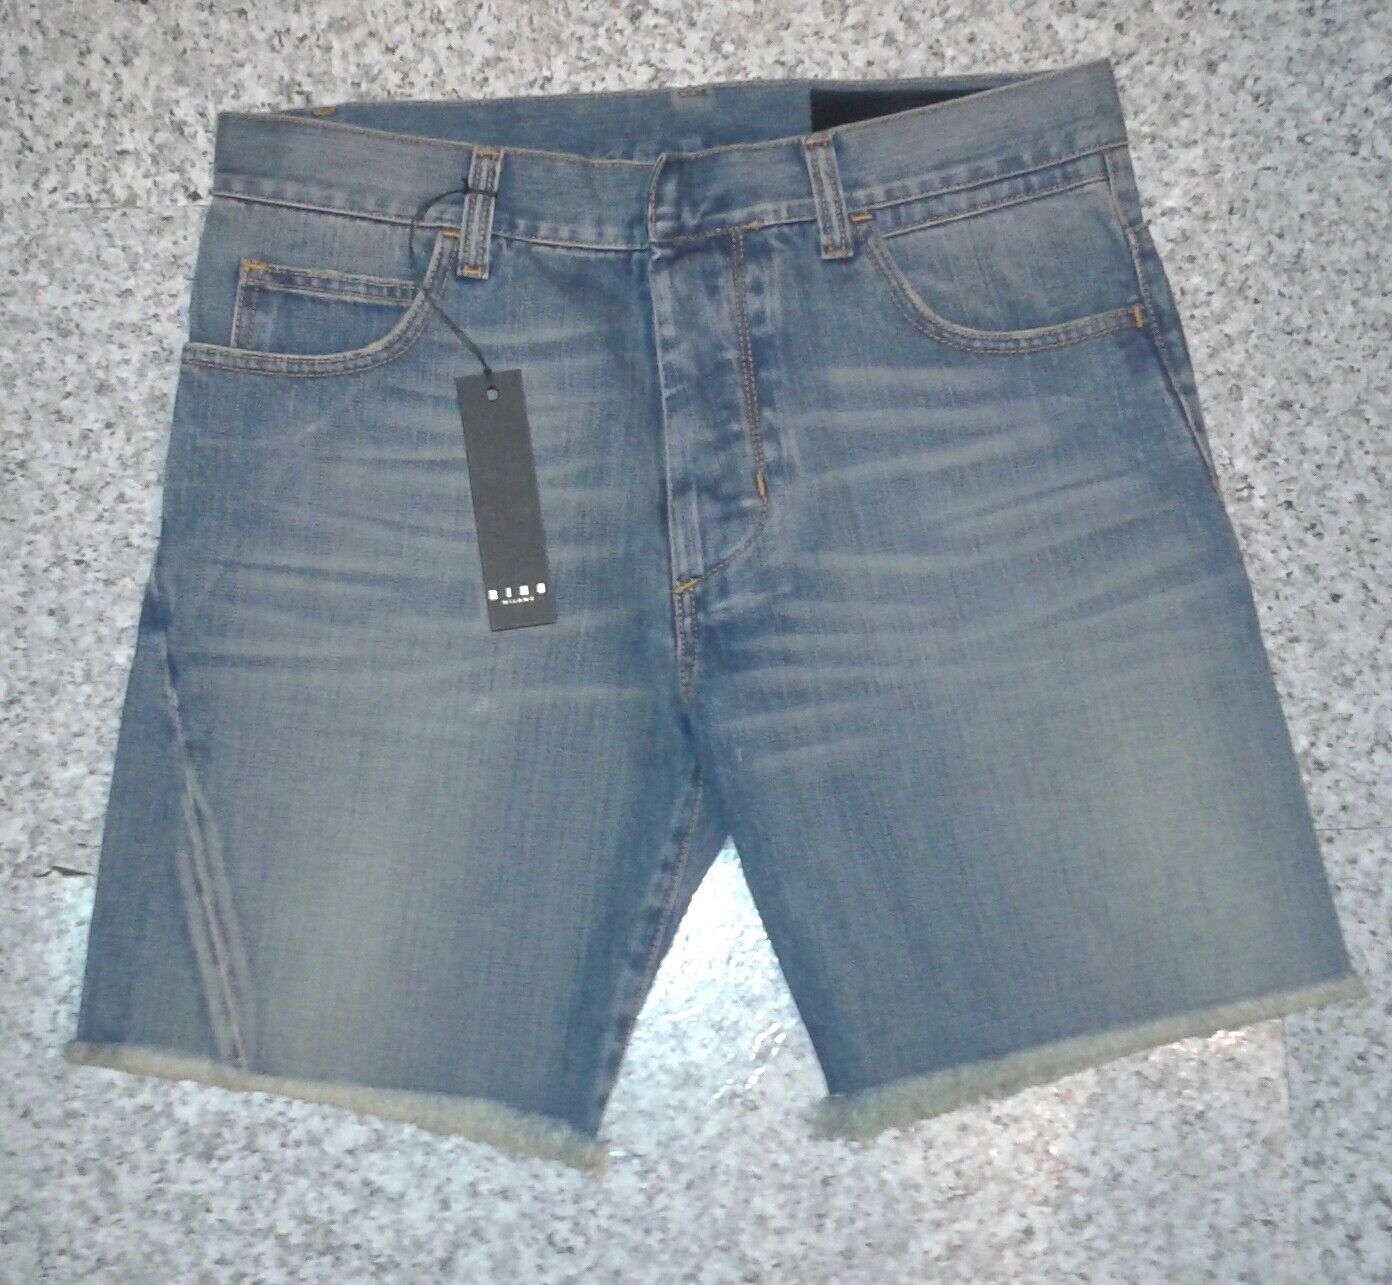 RING Milano bluee Bermuda Jean Shorts  MADE in ITALY - W32 ,33 ,34 ,35